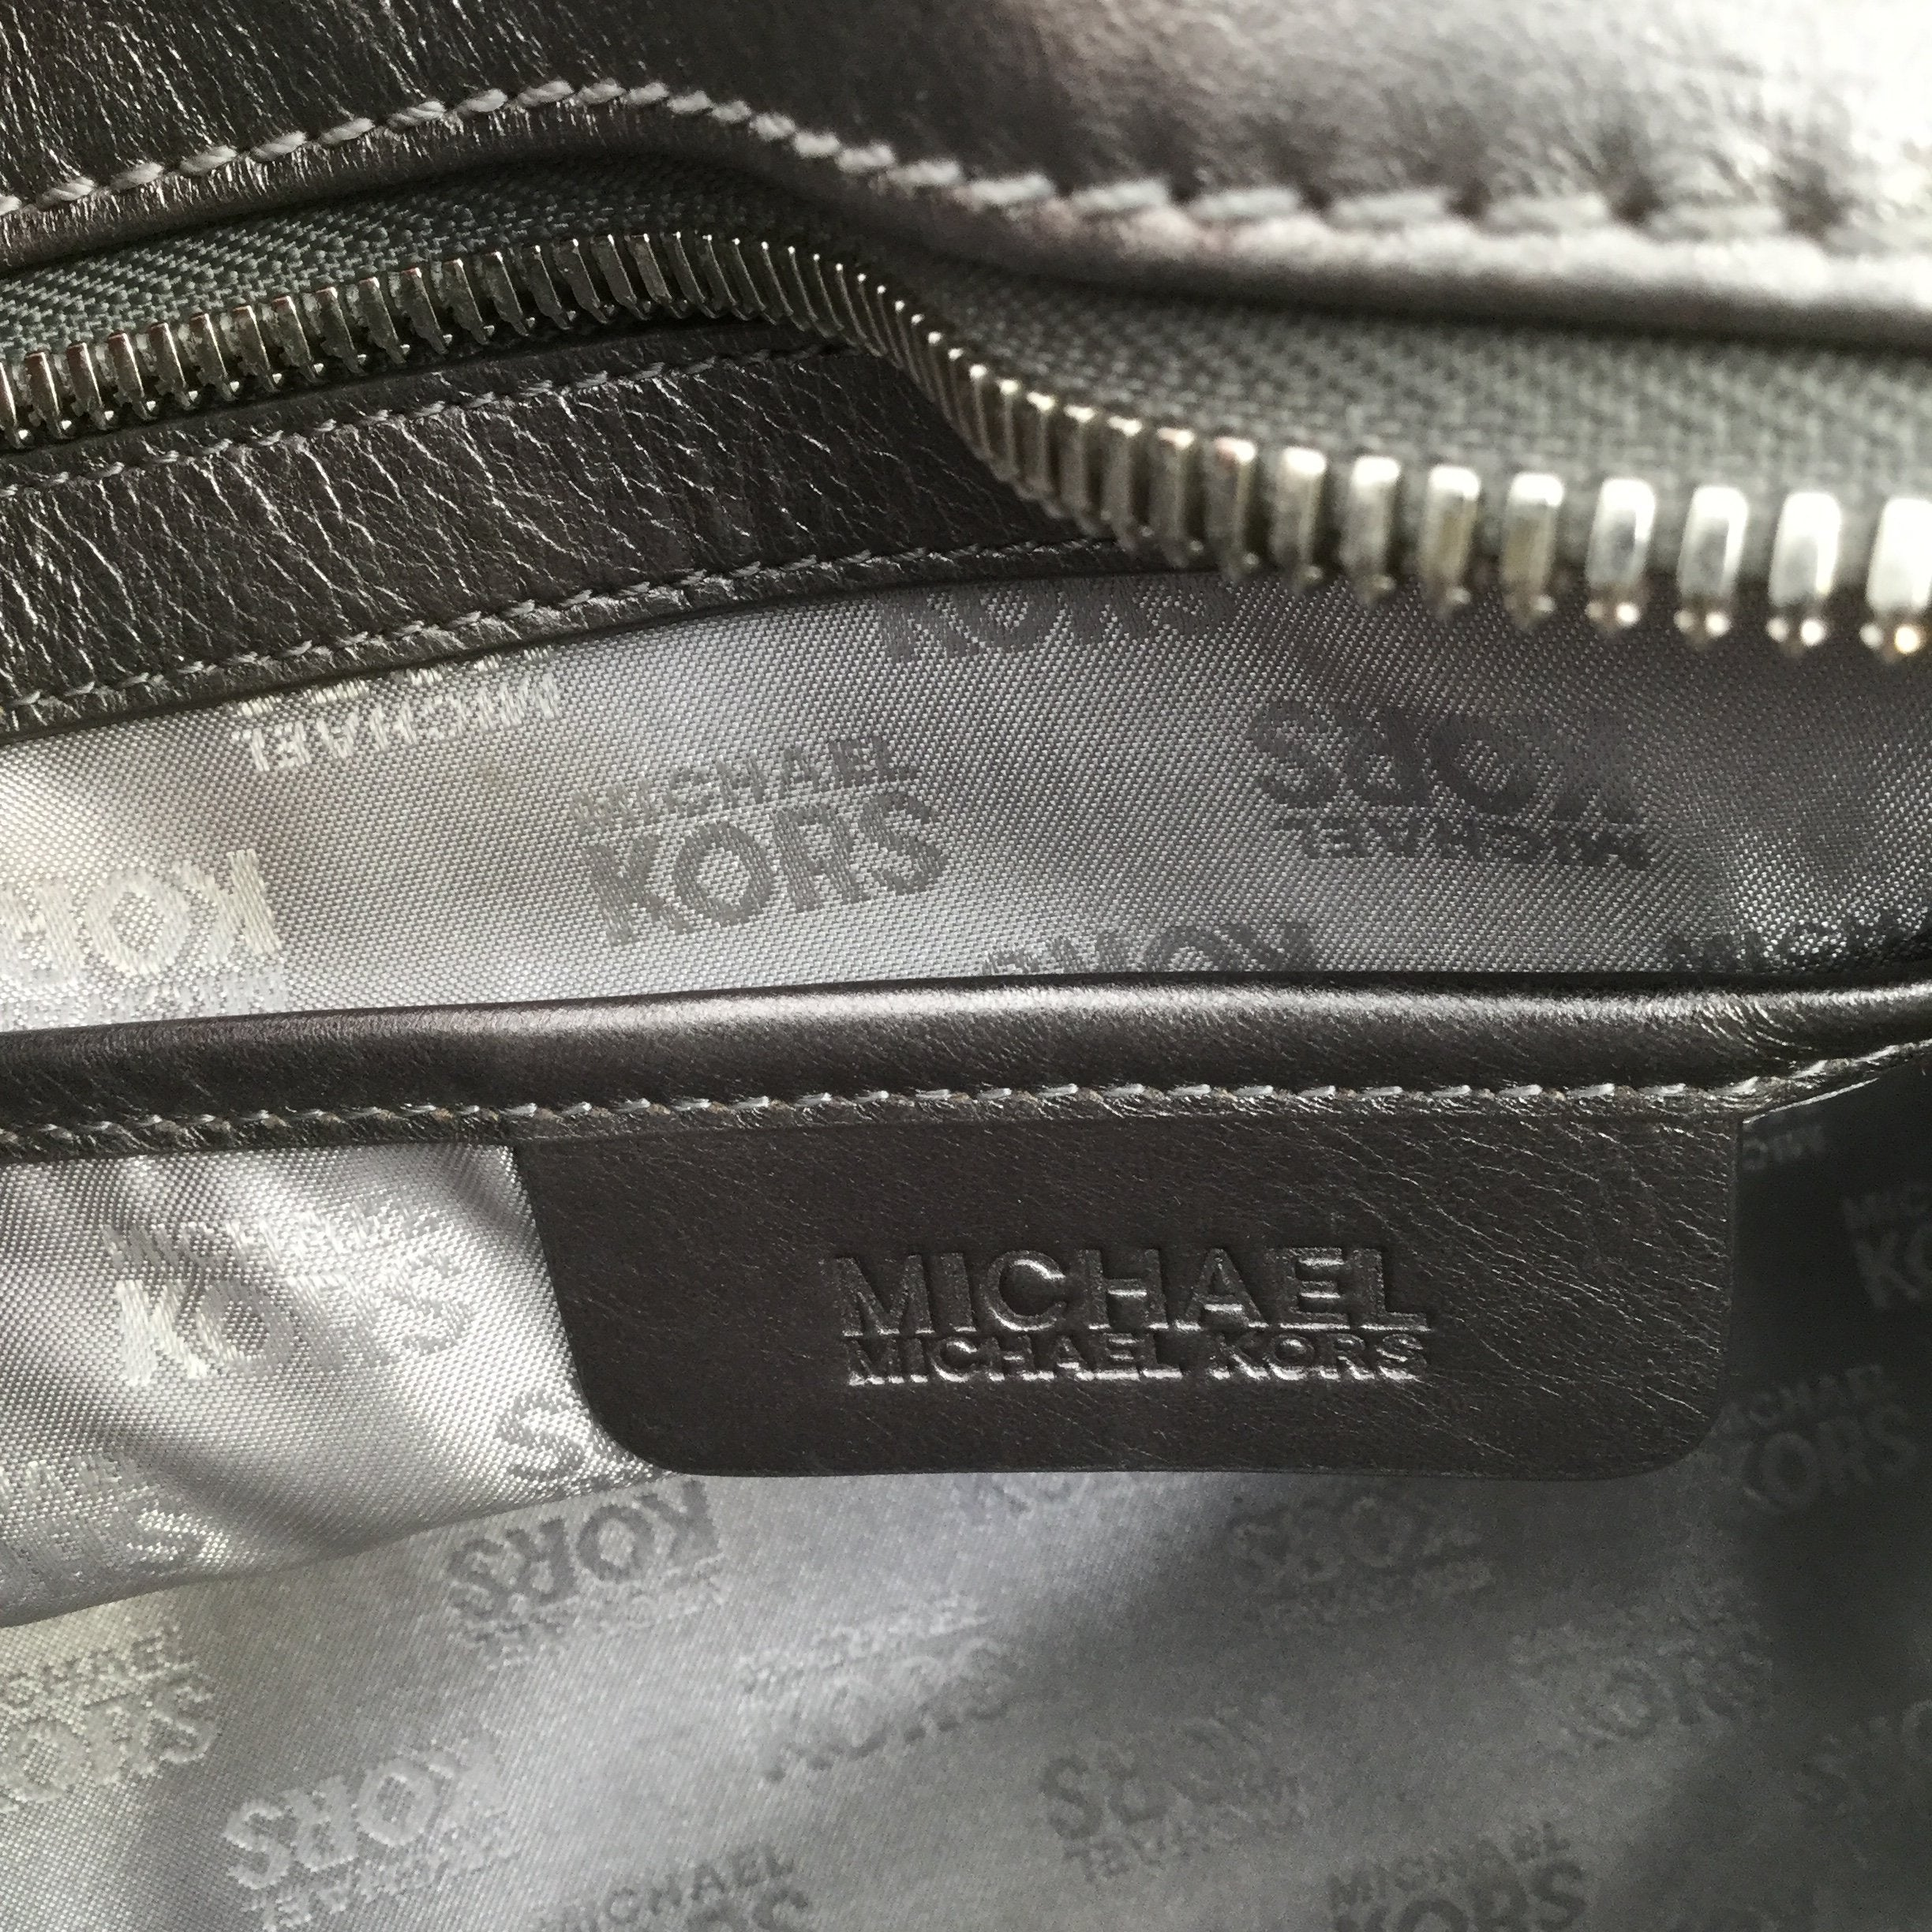 Silver Michael Kors Leather Designer Handbag - <P>THIS MICHAEL KORS HANDBAG HAS SO MANY GREAT DETAILS! THE BAG HAS SOME MINOR CONDITION ISSUES (SEE PHOTOS). THE INSIDE OF THE BAG IS VERY CLEAN!</P>